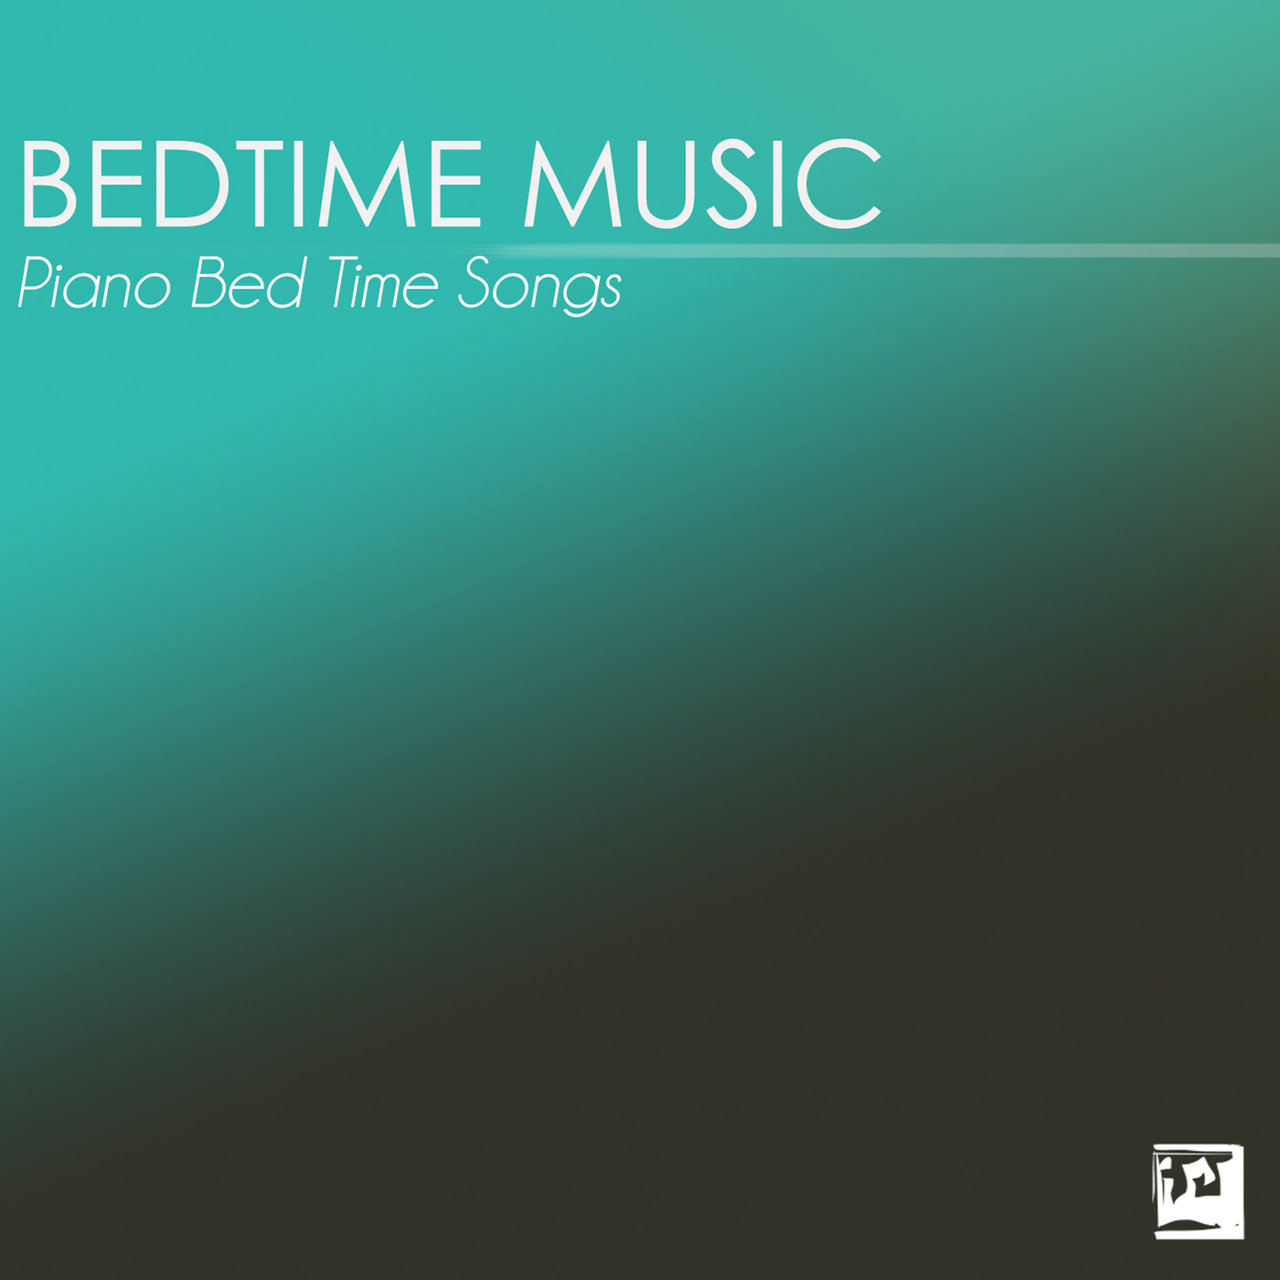 Baby bedtime music - Bedtime Music Piano Bed Time Songs For Sleeping Baby Toddler Sleep Bedtime Songs Collective Tidal